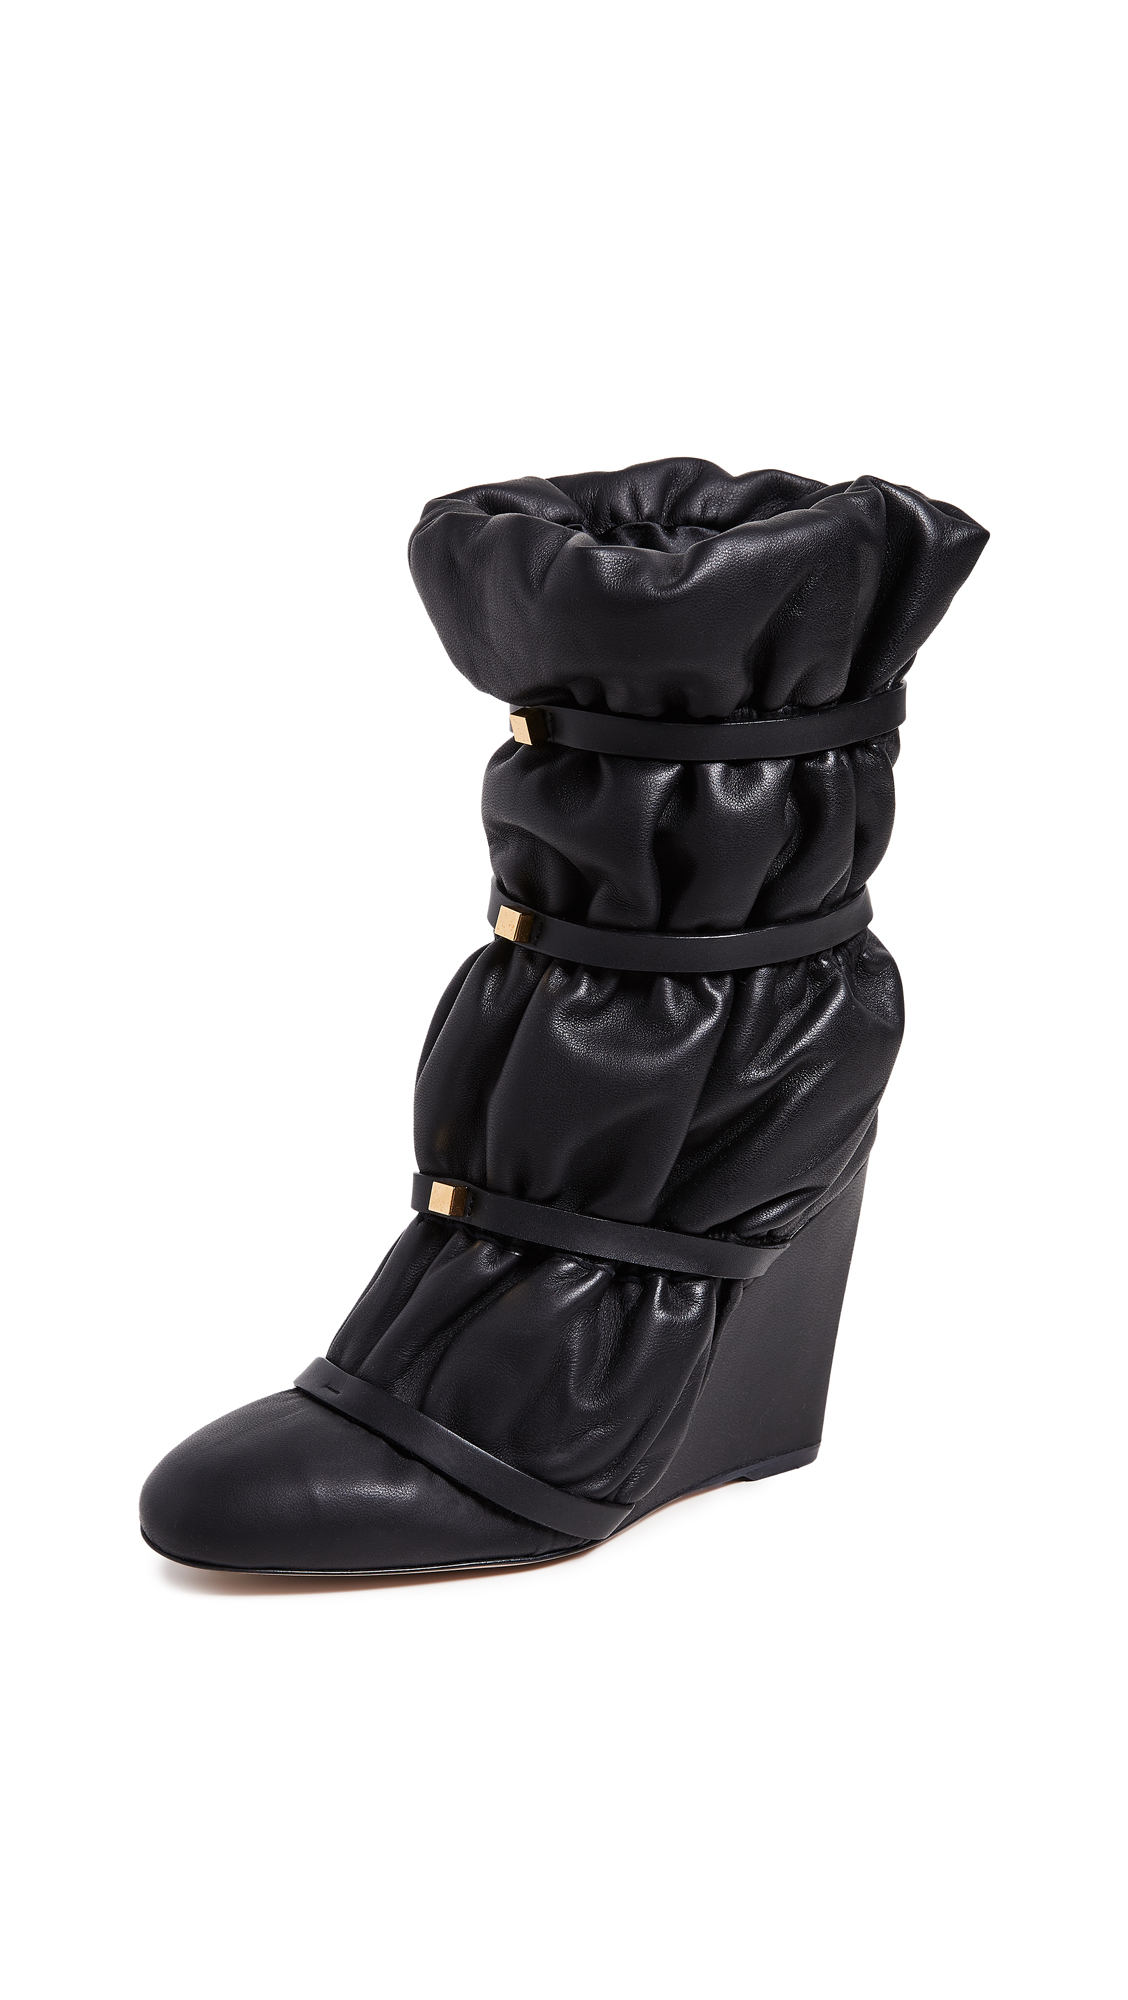 Photo of Stuart Weitzman Duvet Stud Boots online shoes sales